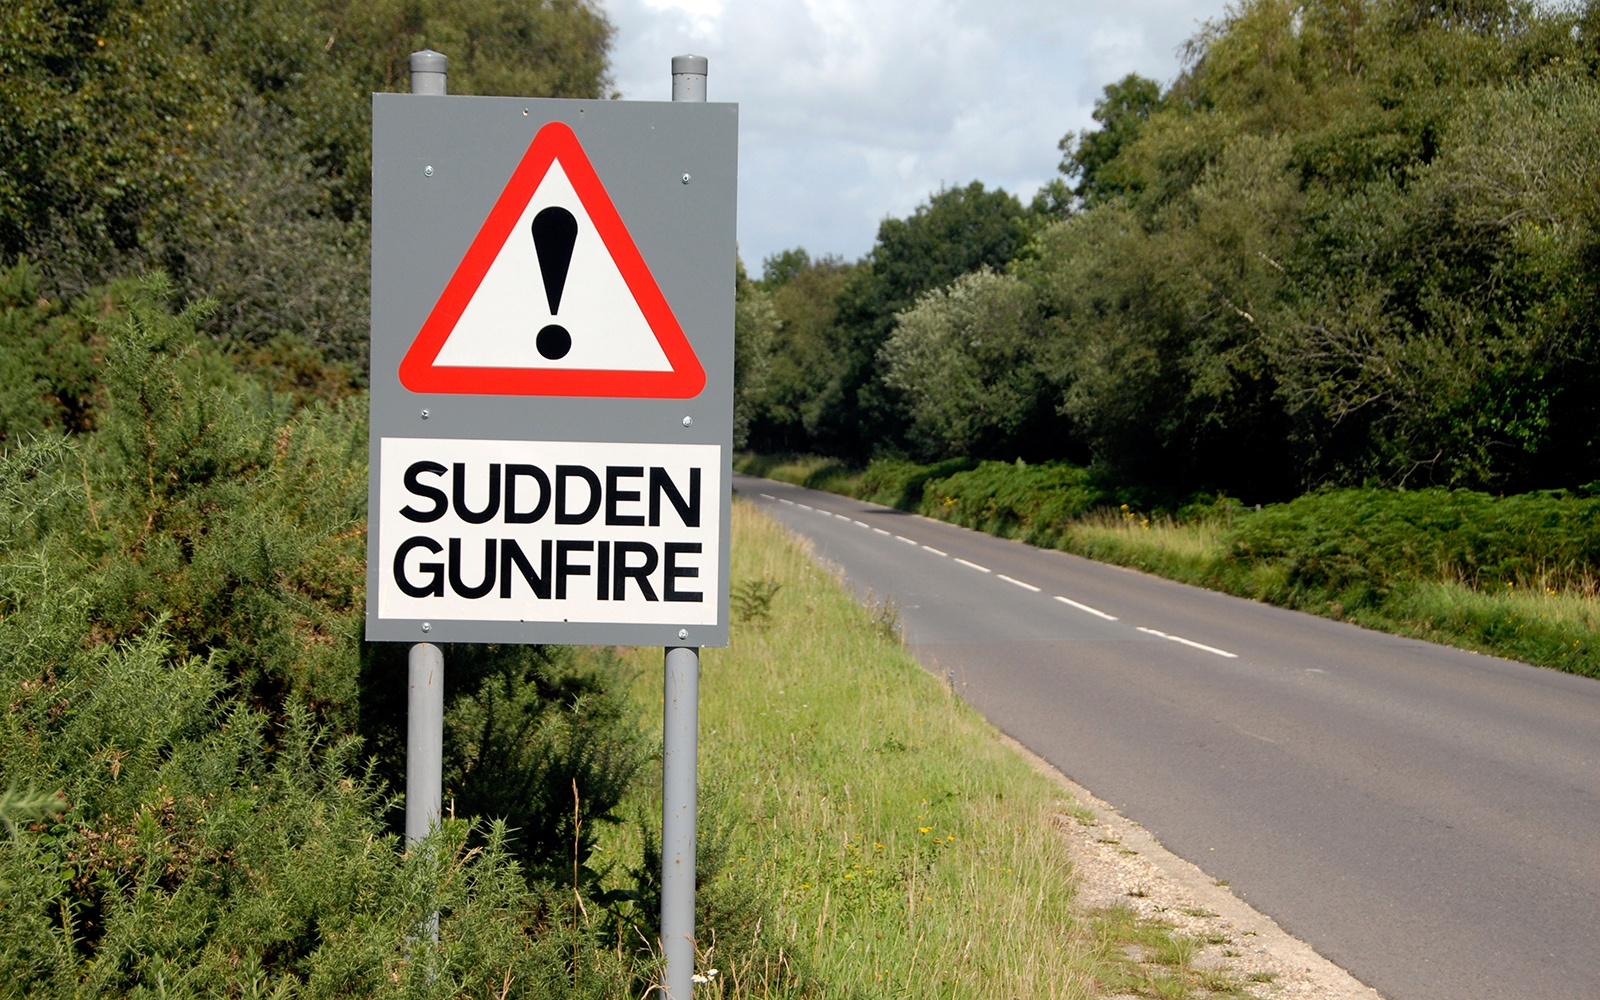 201209-w-funniest-signs-sudden-gunfire